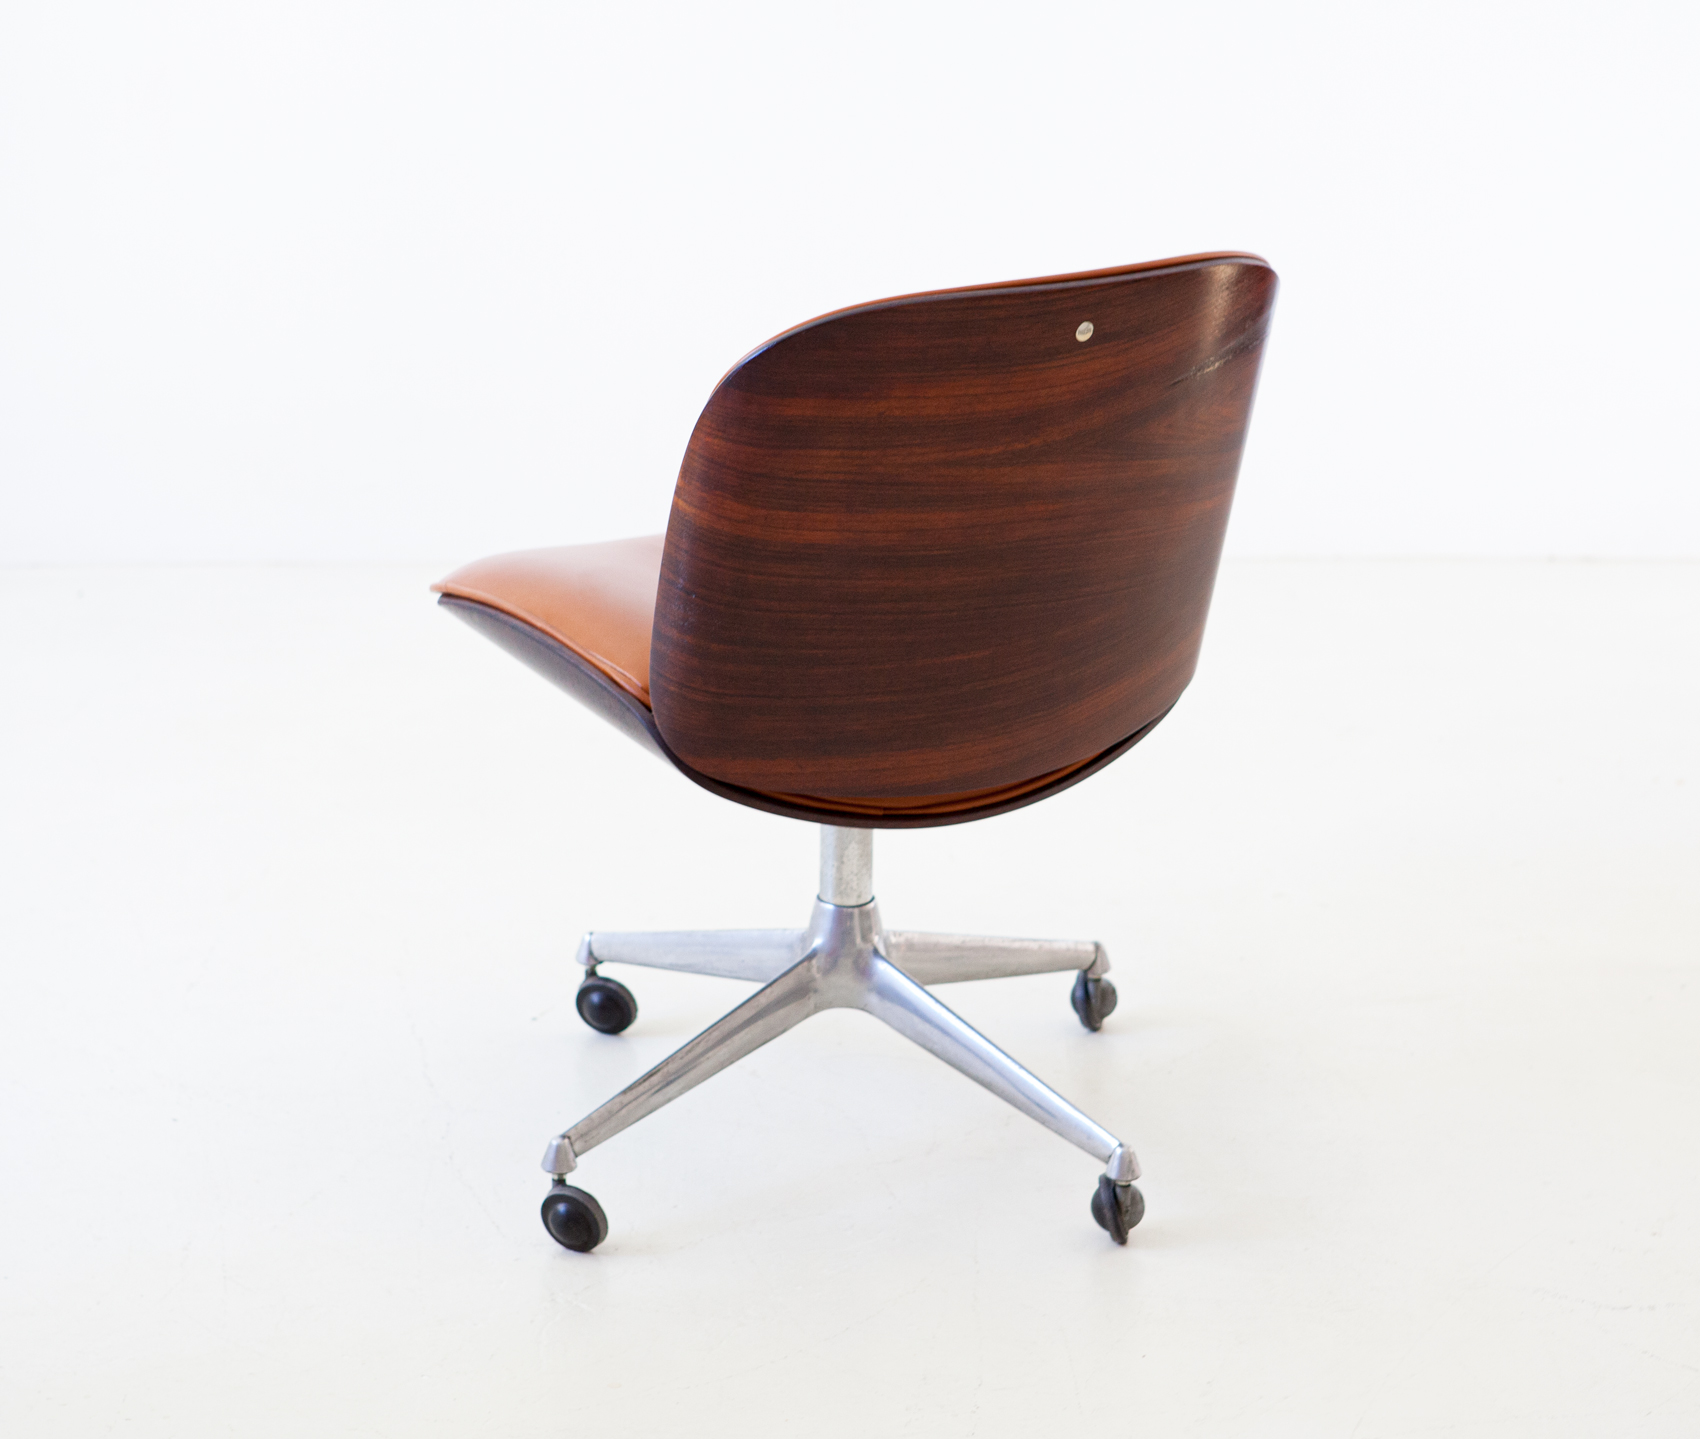 1950s-rosewood-and-cognac-leather-swivel-chair-by-ico-parisi-for-mim-1-se328a